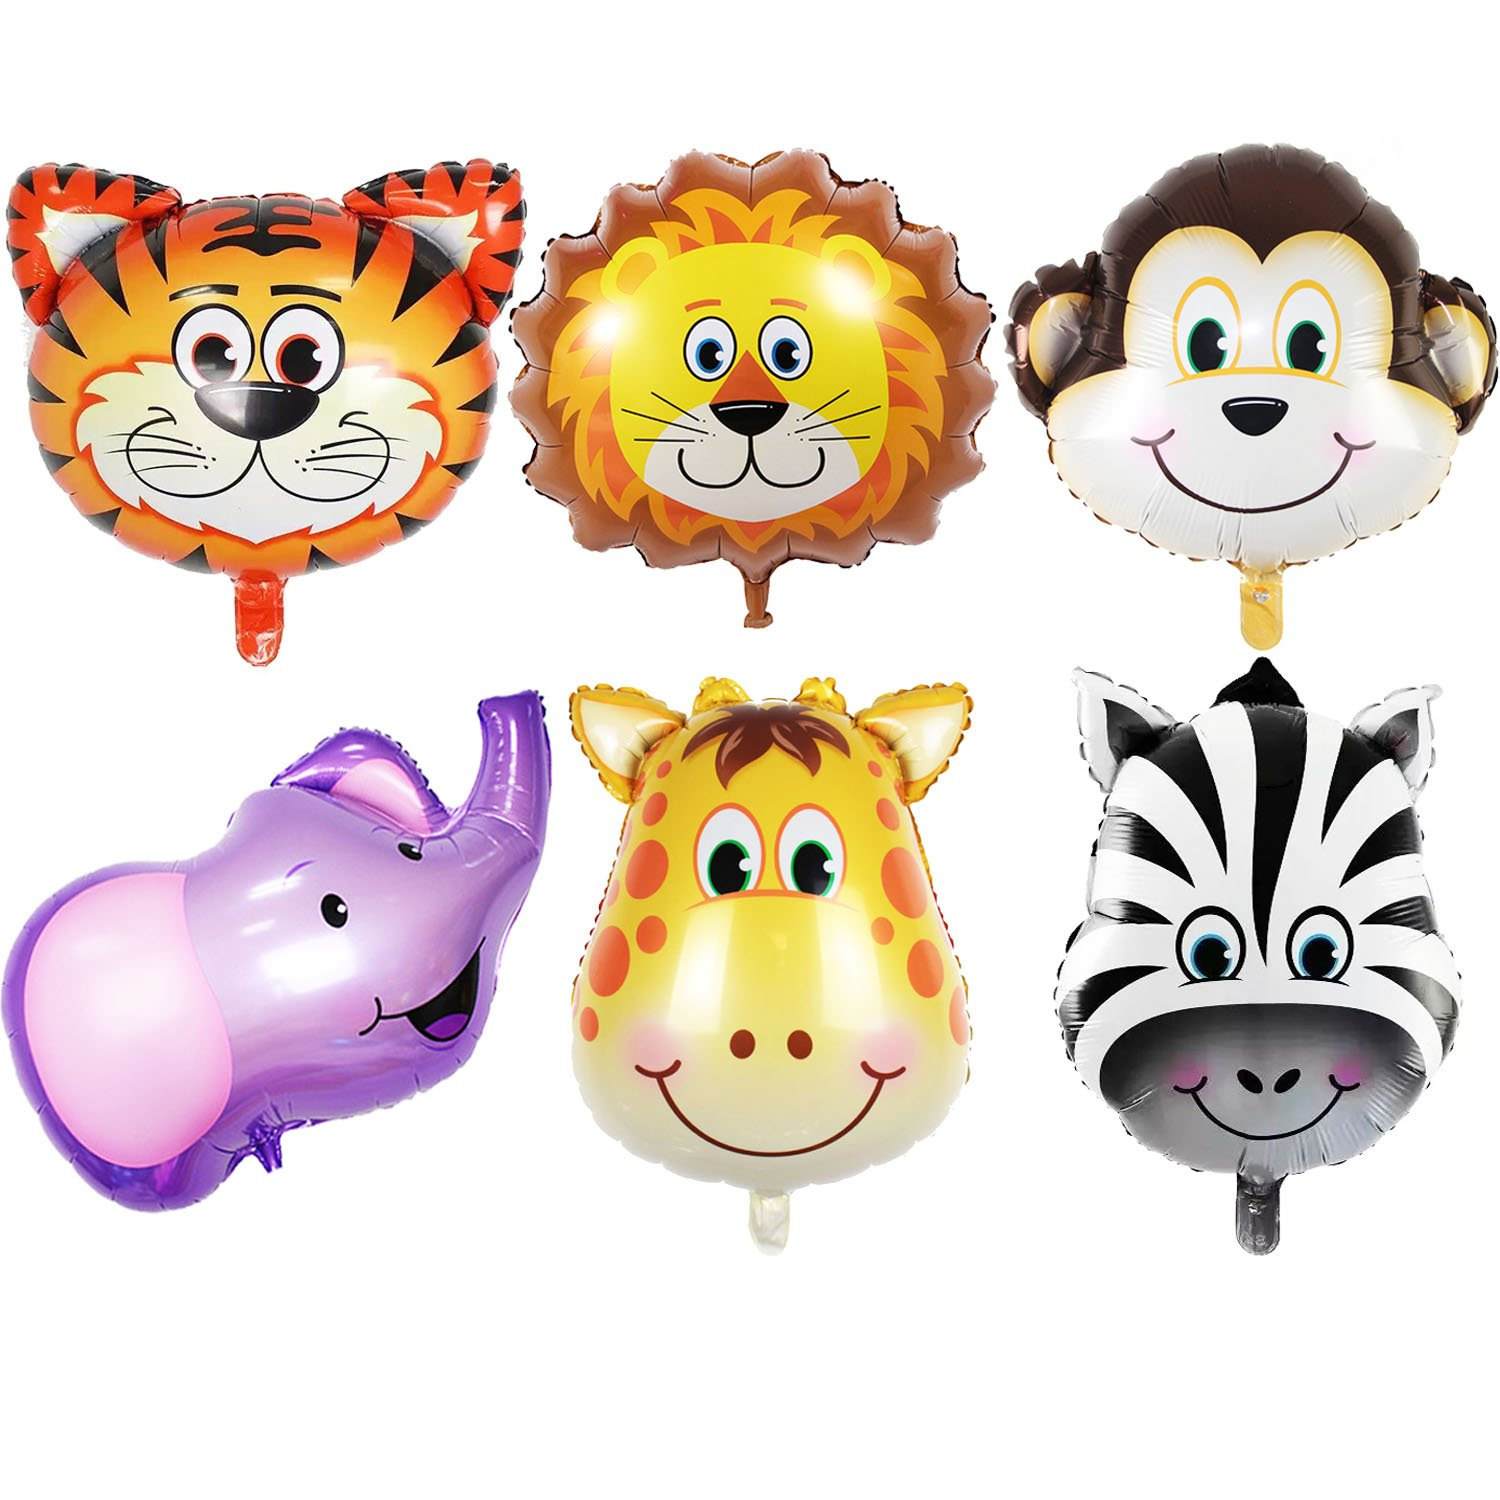 JUNGLE SAFARI ANIMALS BALLOONS - 6pcs 22 Inch Giant Zoo Animal Balloons Kit For Jungle Safari Animals Theme Birthday Party Decorations 6 animal balloon Guaanimalballoon